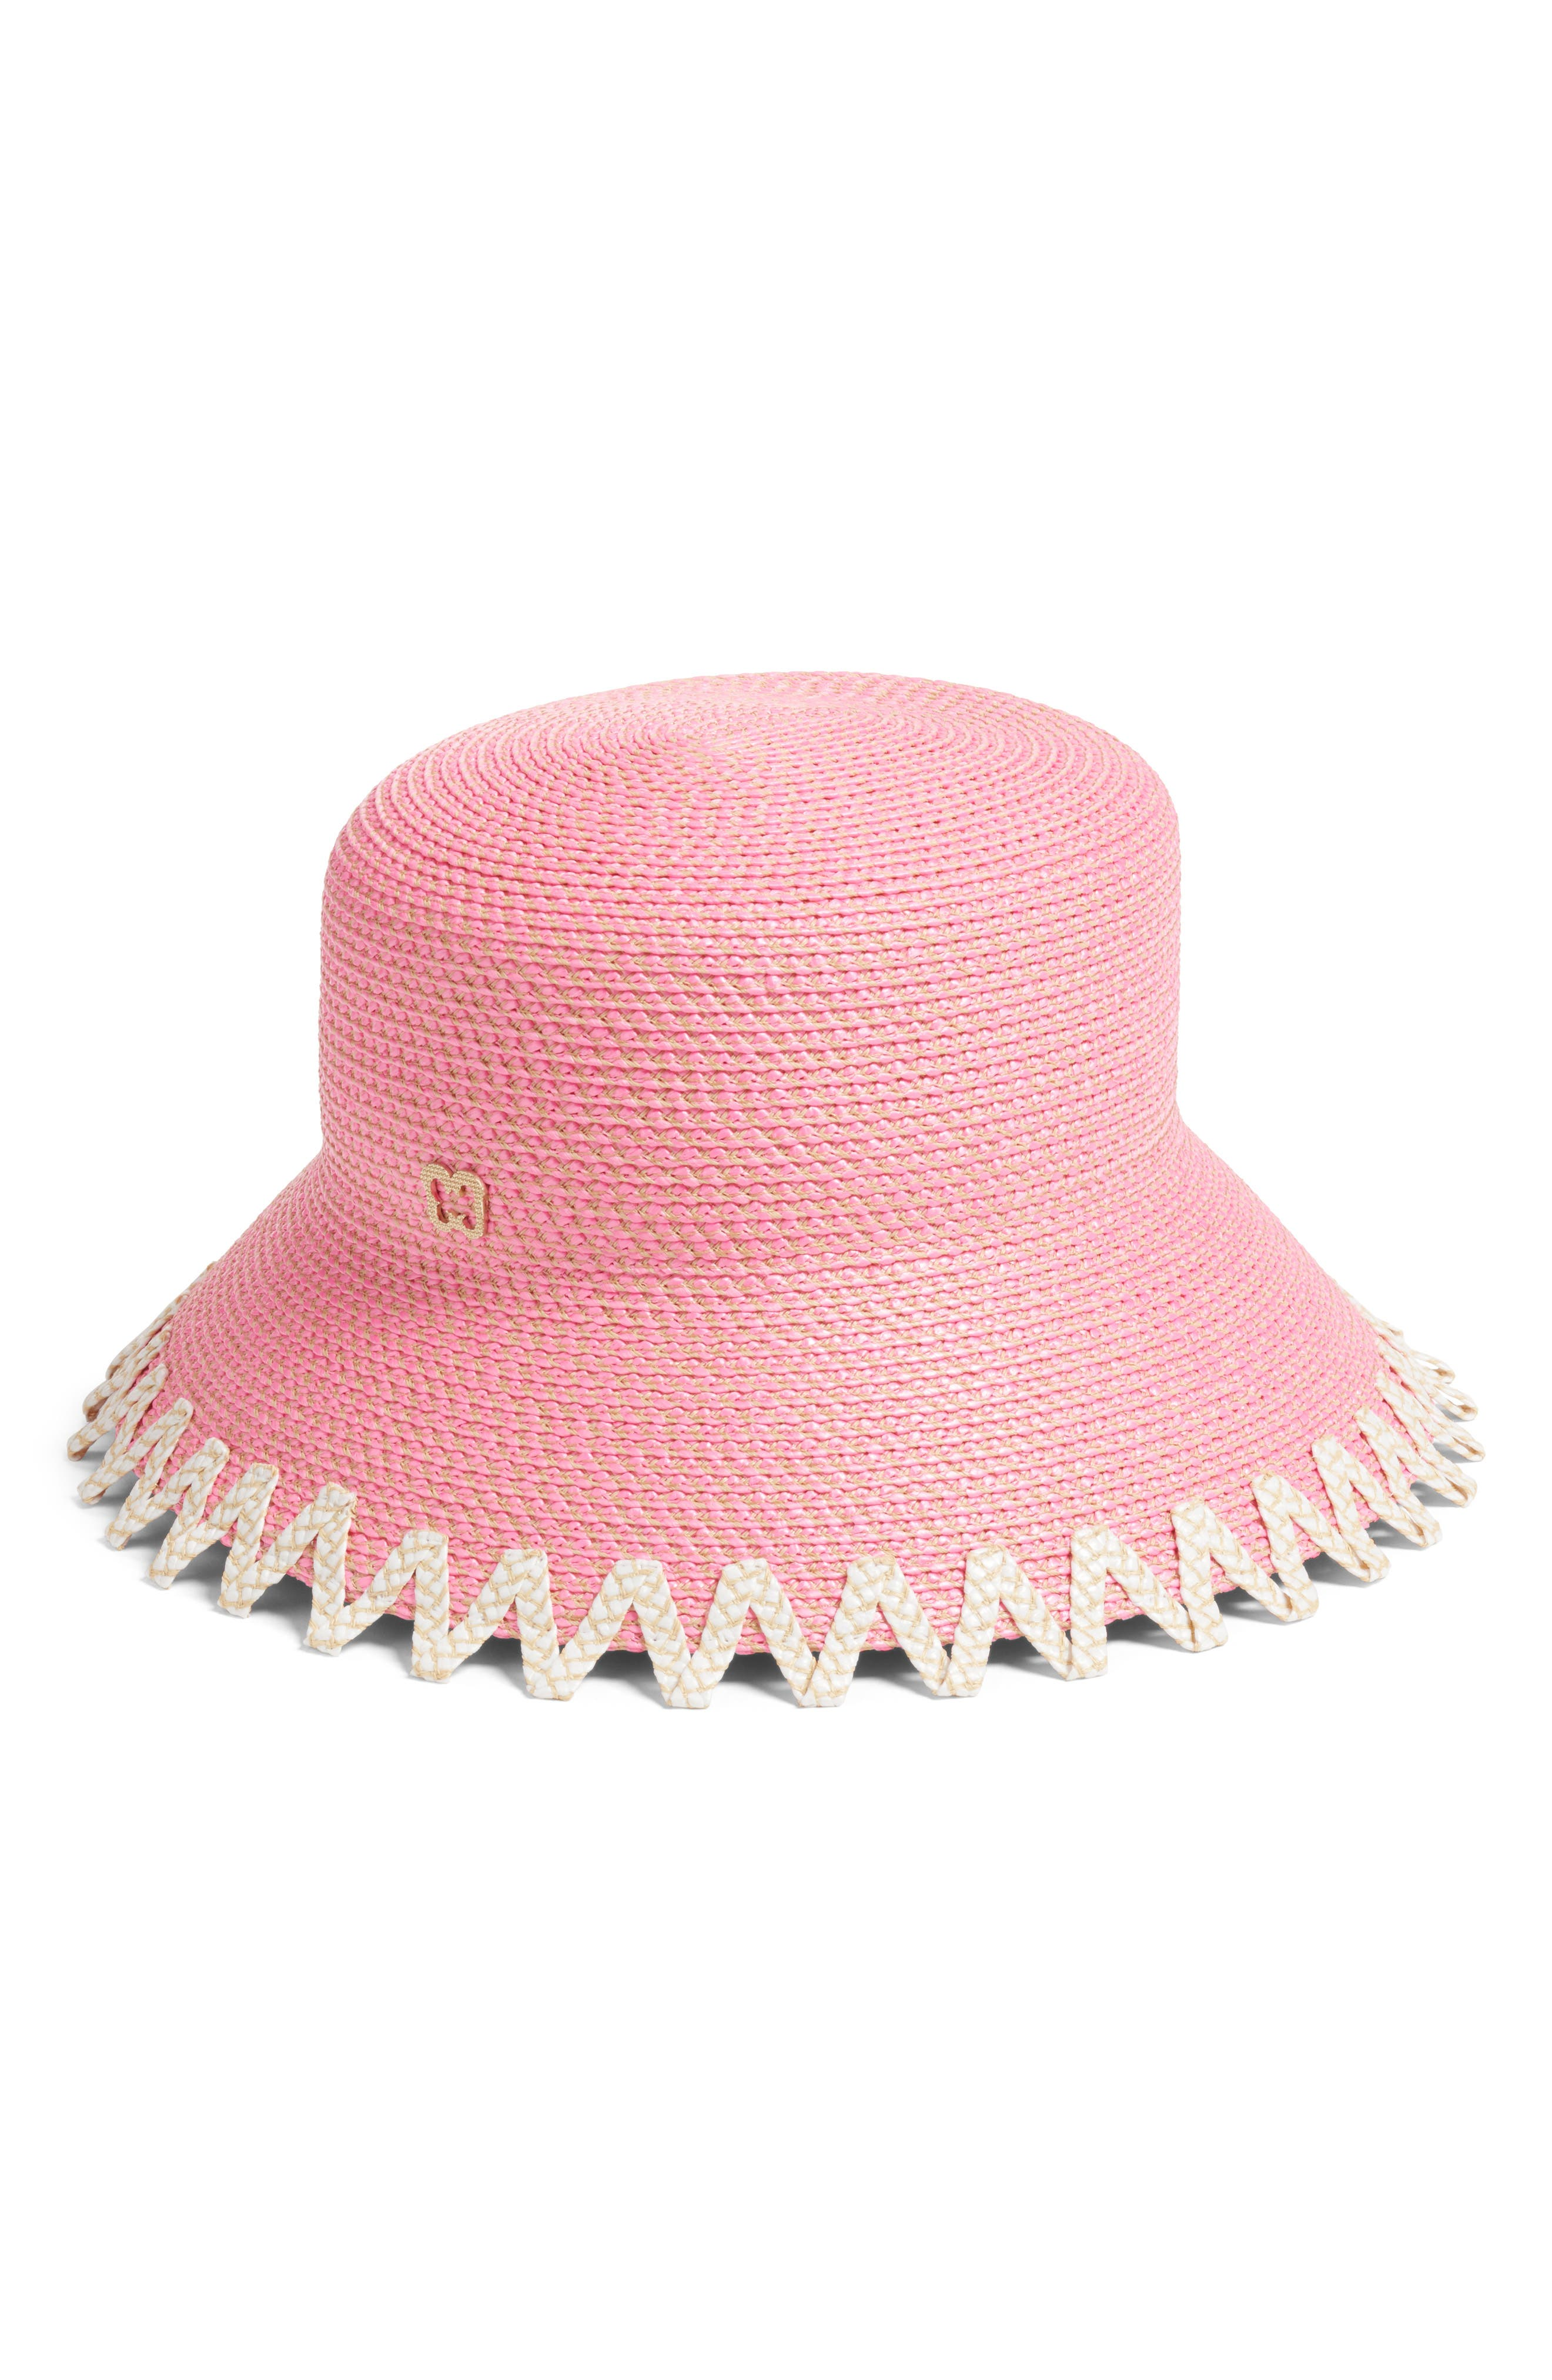 834a8eef06c Cute Girl Bucket Hats